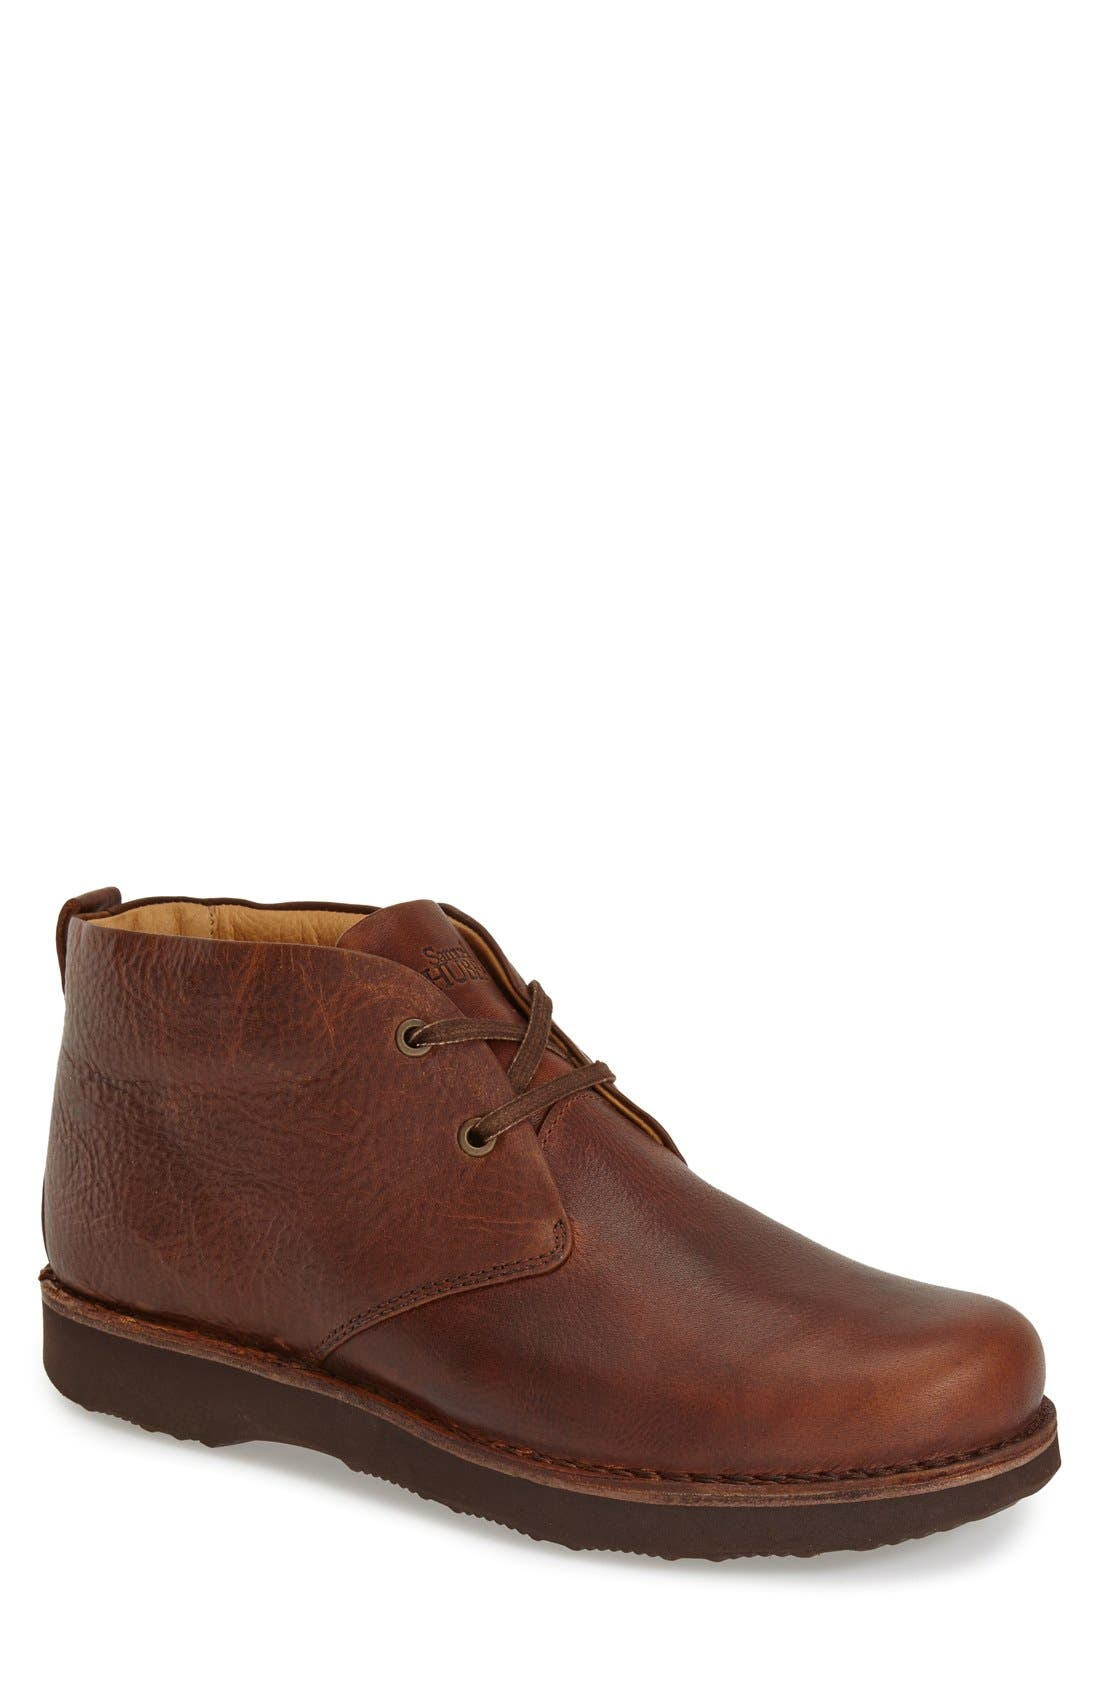 'Boot-Up' Chukka Boot,                         Main,                         color, 210